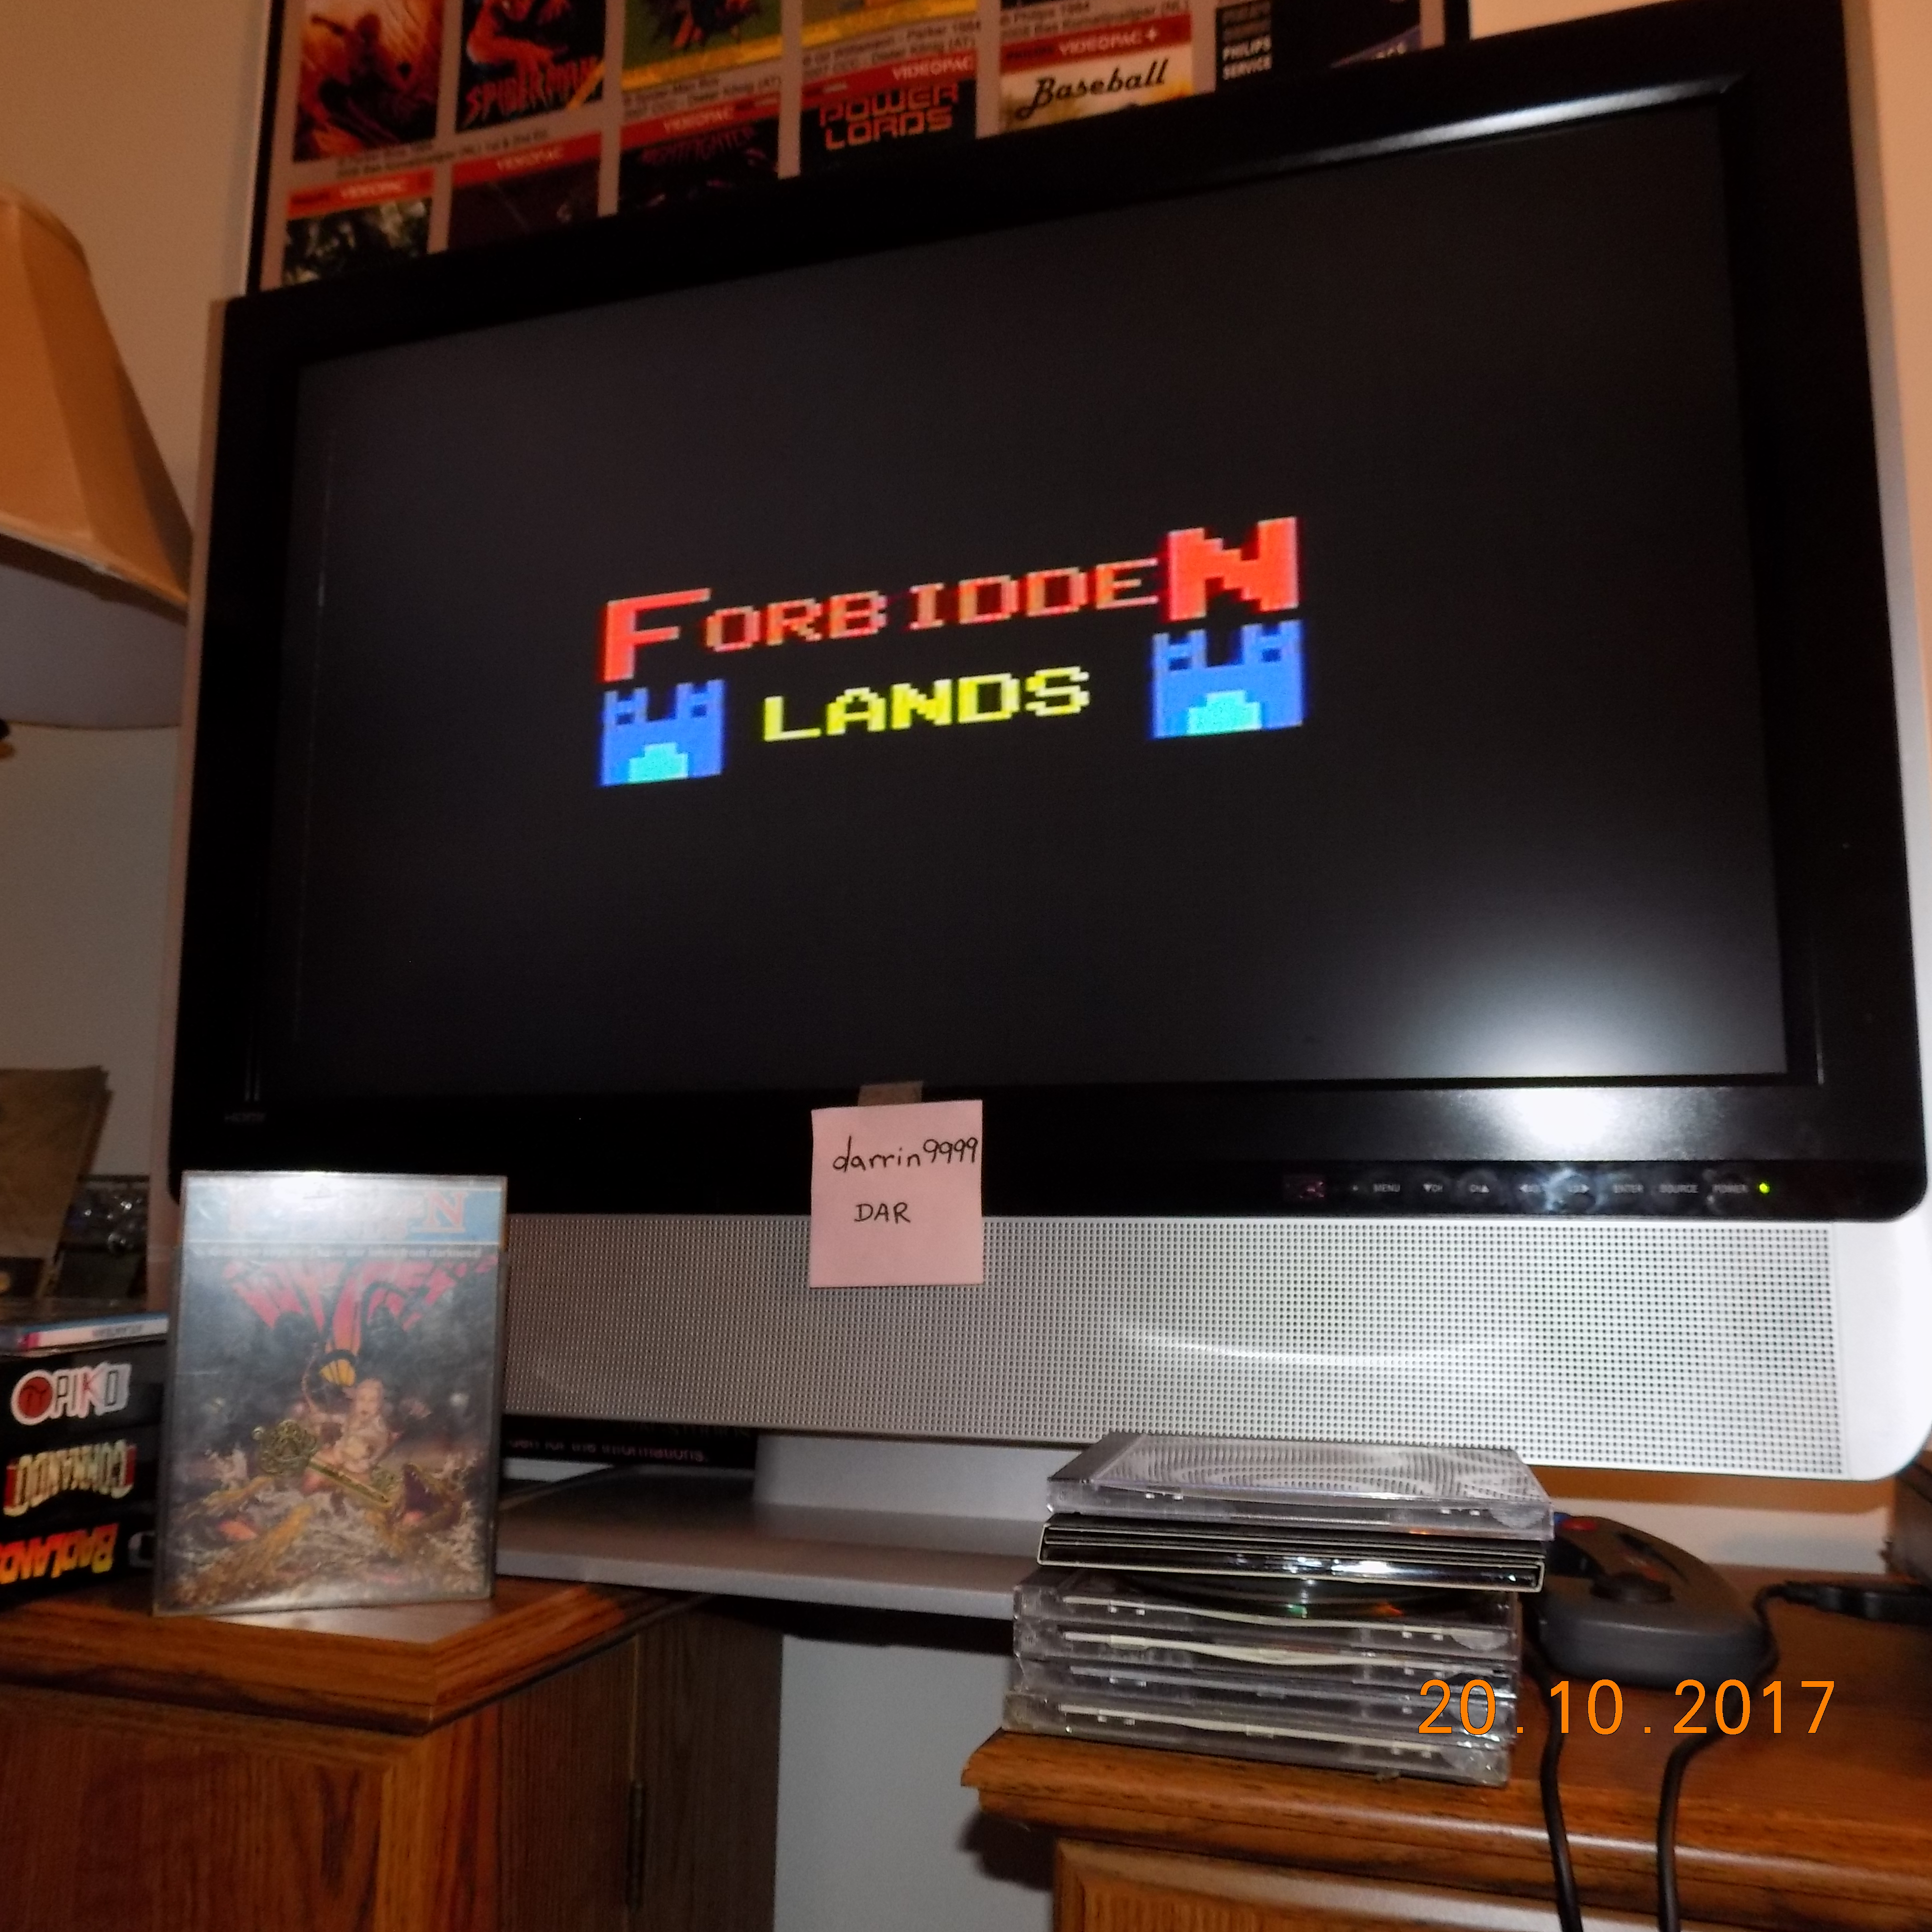 darrin9999: Forbidden Lands (Odyssey 2 / Videopac) 732 points on 2018-03-14 14:48:44